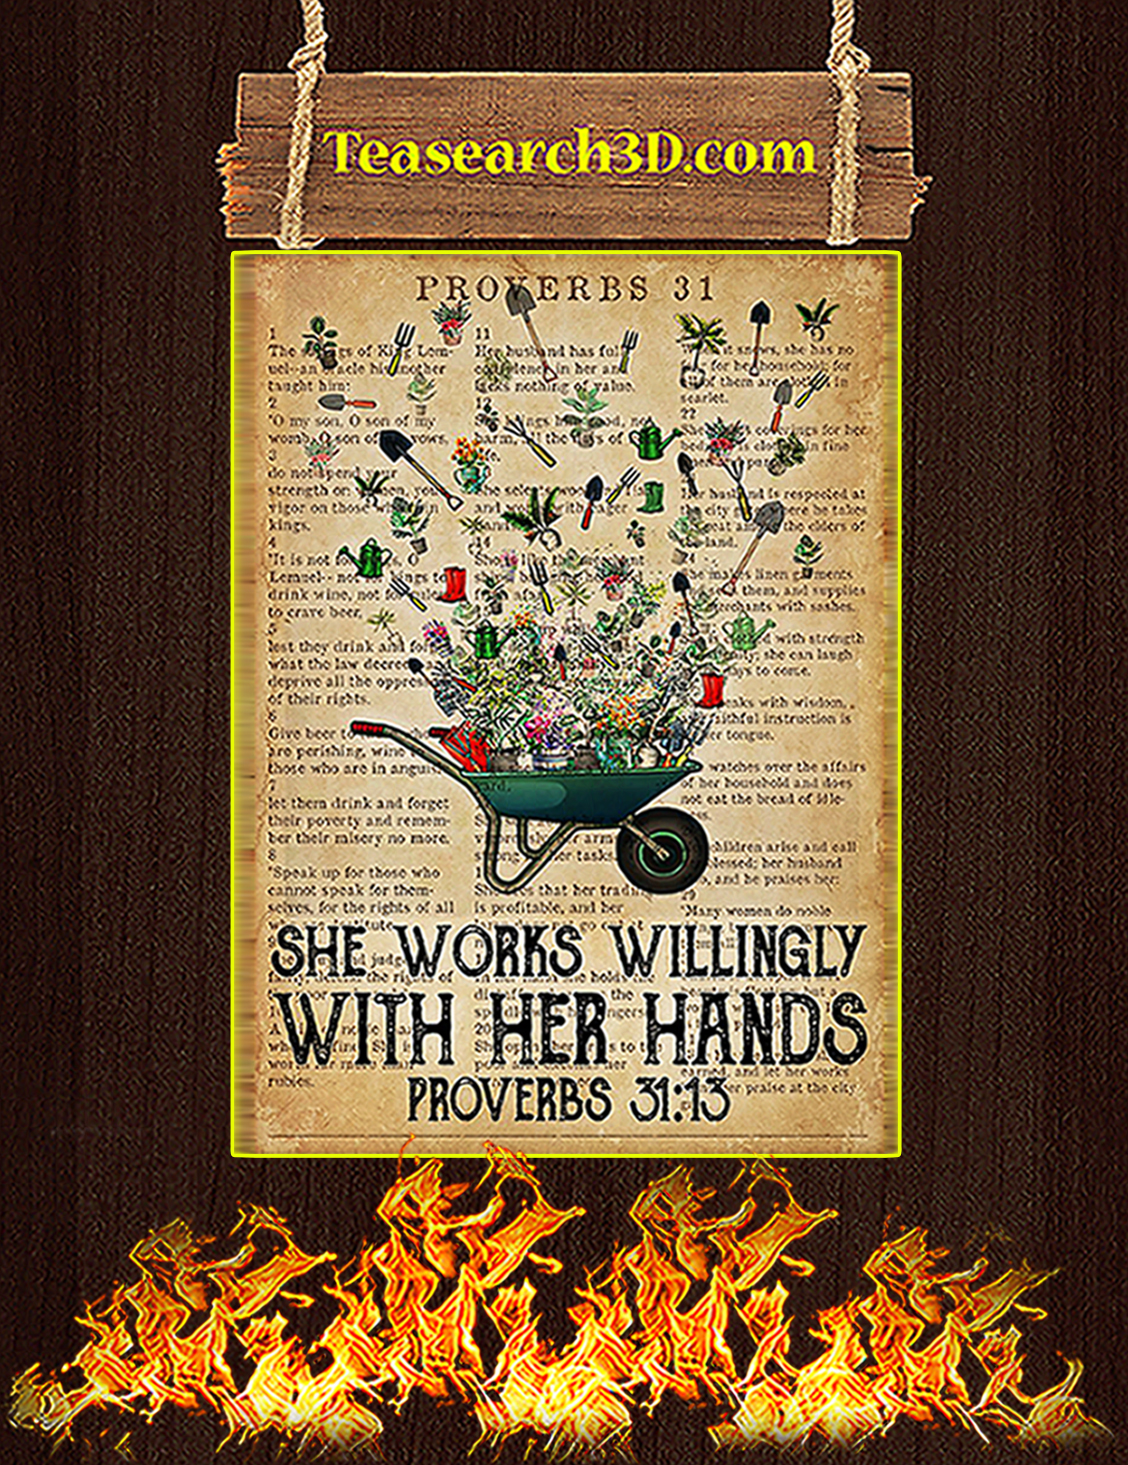 Garden She works willingly with her hands poster A3